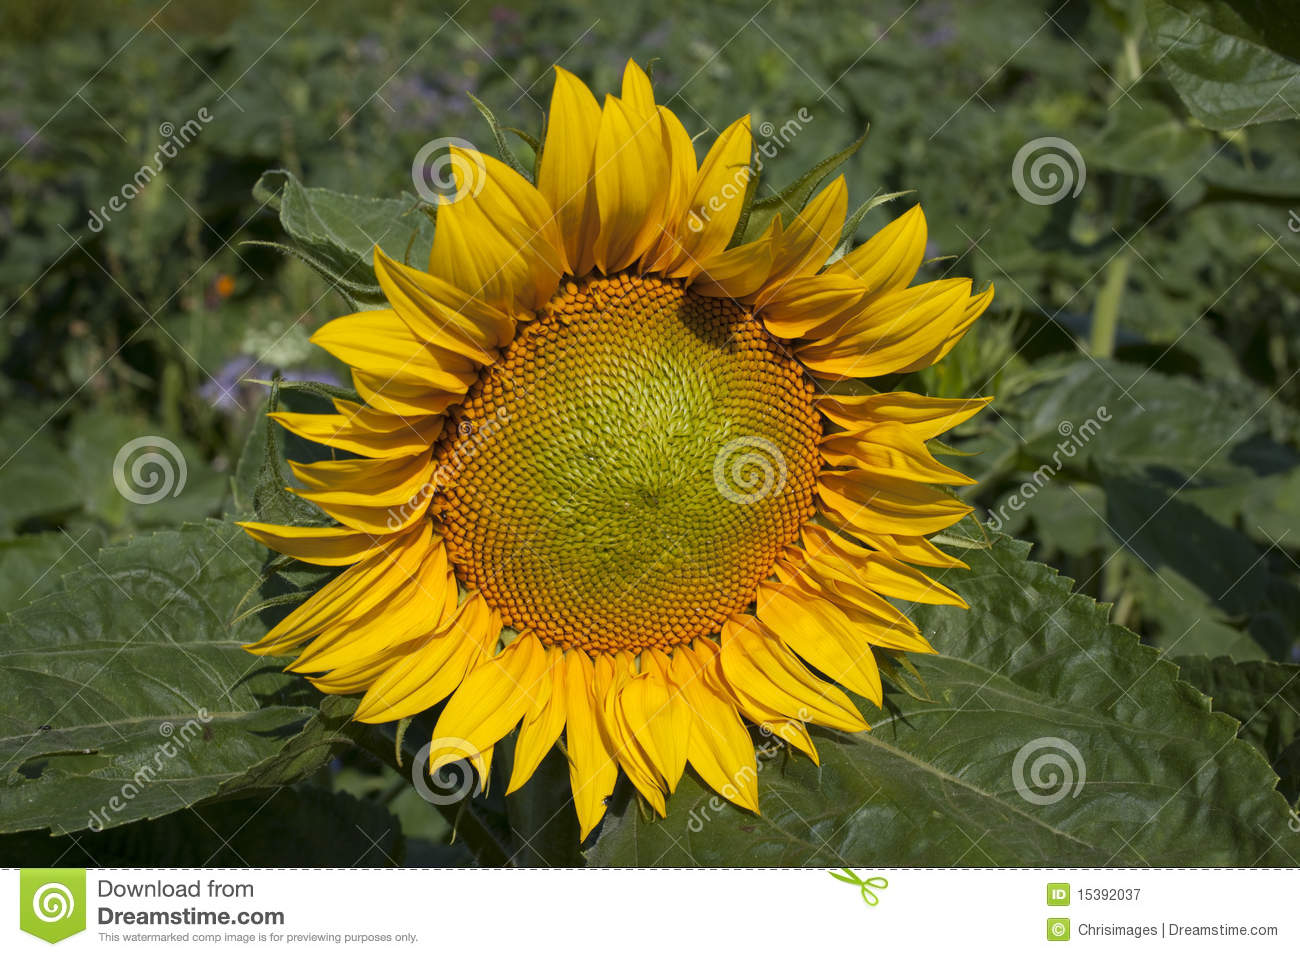 - sunflower-15392037